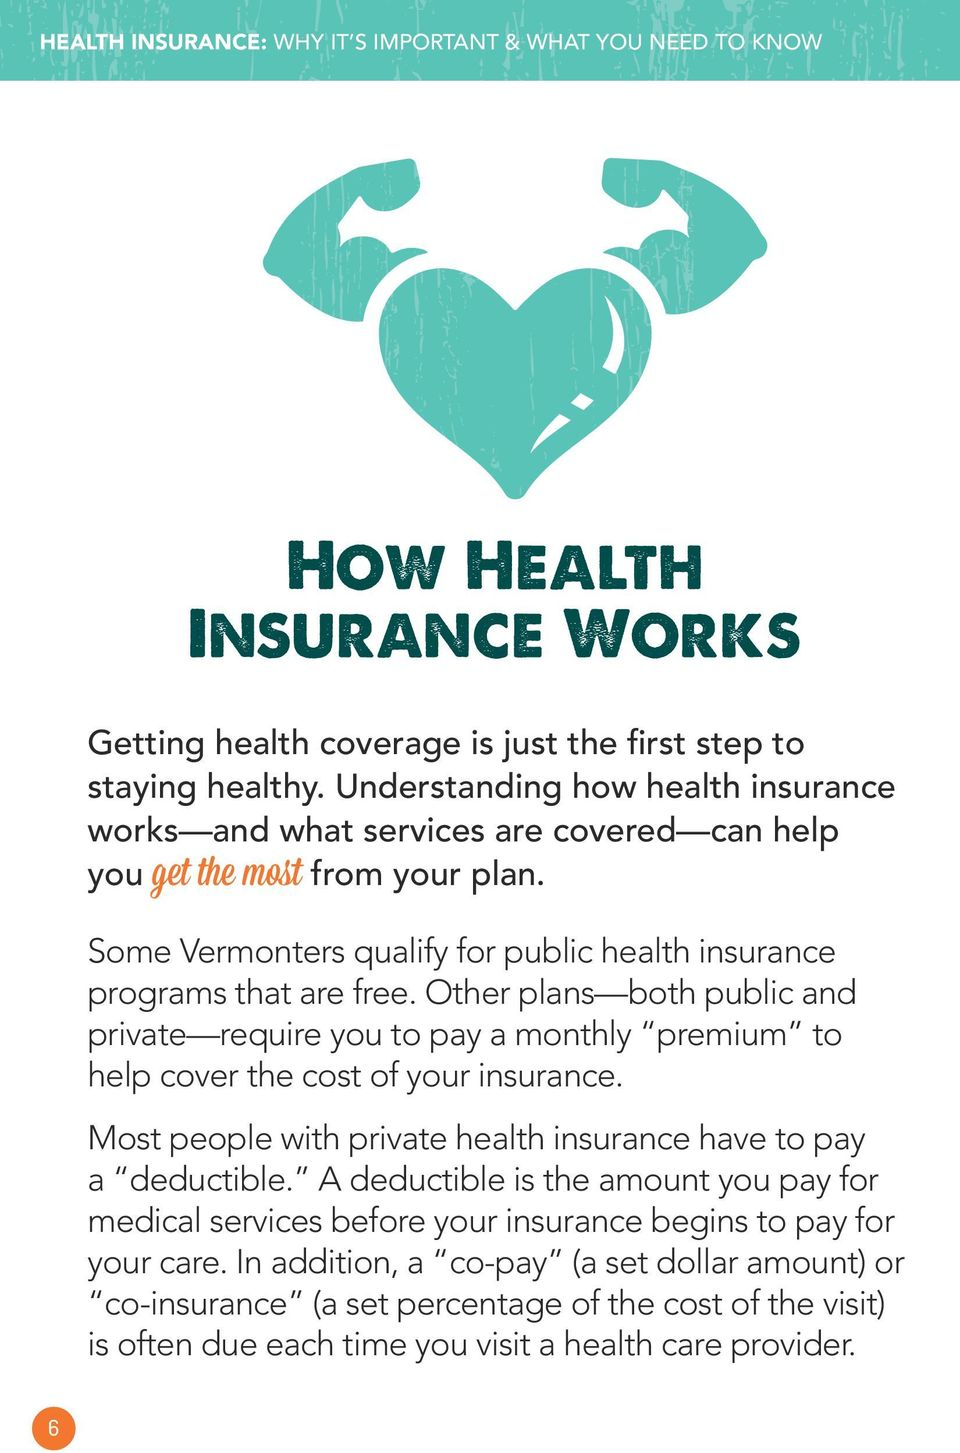 Other plans both public and private require you to pay a monthly premium to help cover the cost of your insurance. Most people with private health insurance have to pay a deductible.